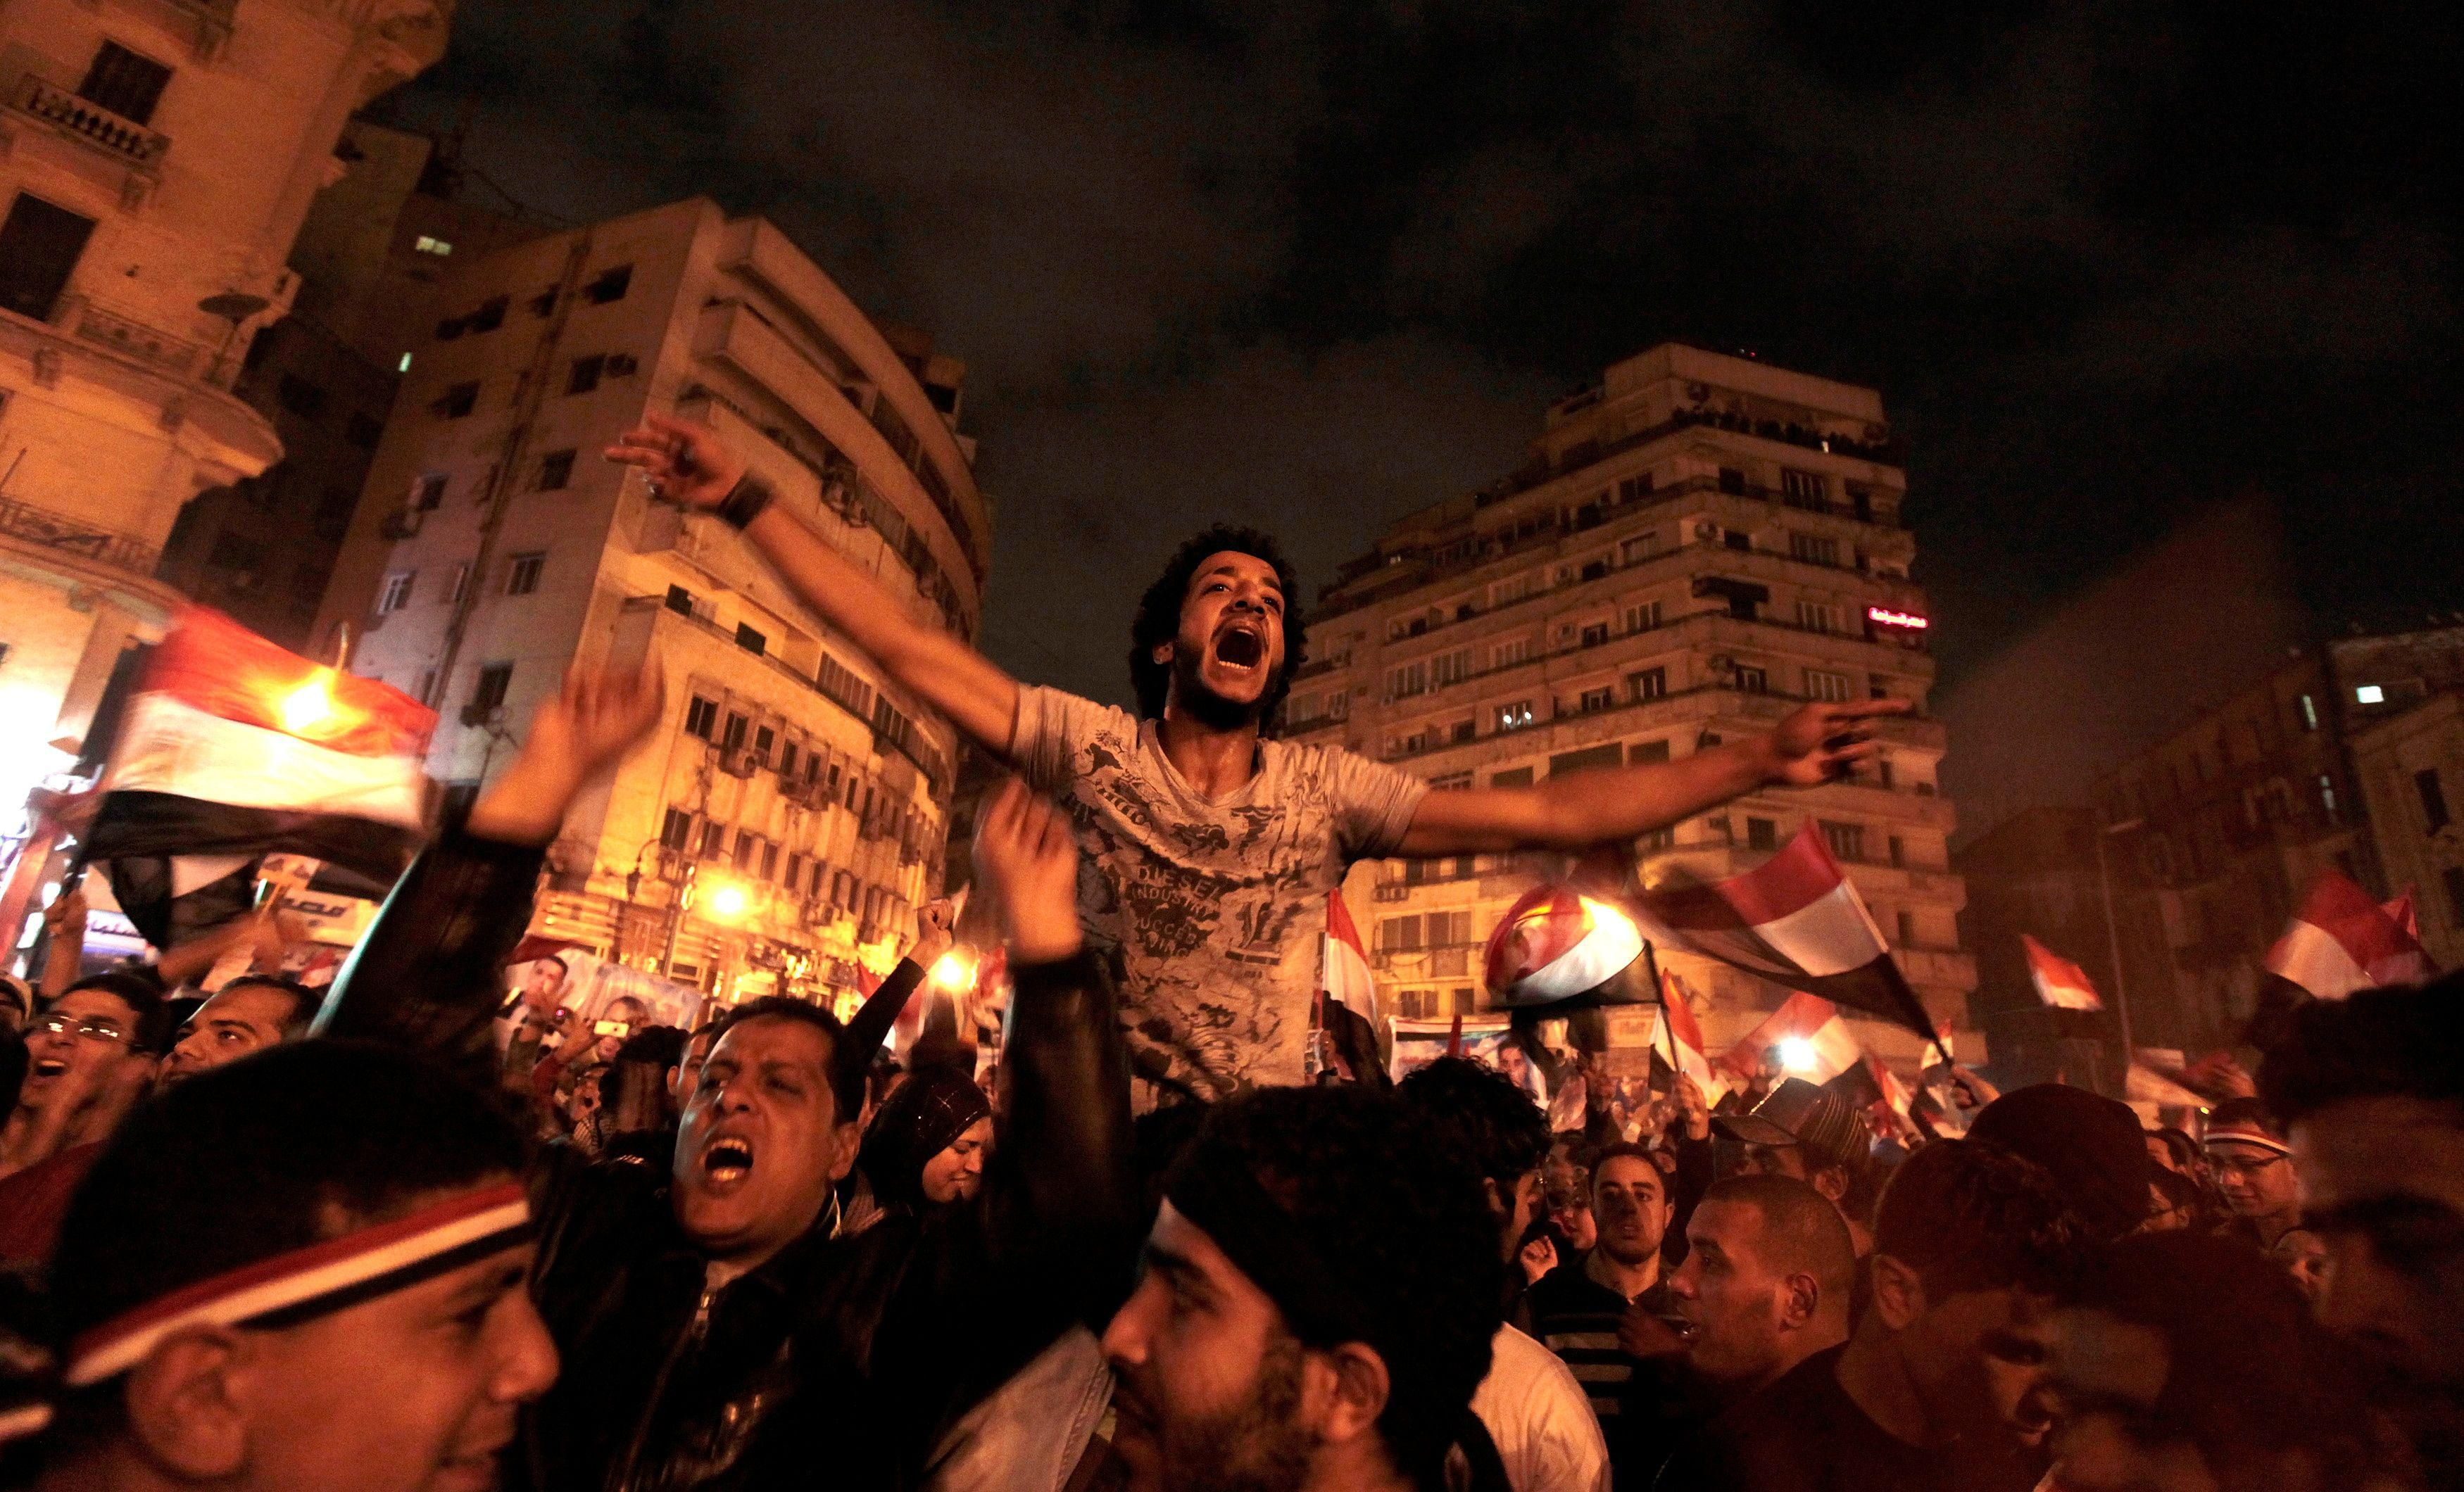 Anti-government protesters celebrate inside Tahrir Square after the announcement of Egyptian President Hosni Mubarak's resignation in Cairo, Egypt, February 11, 2011.